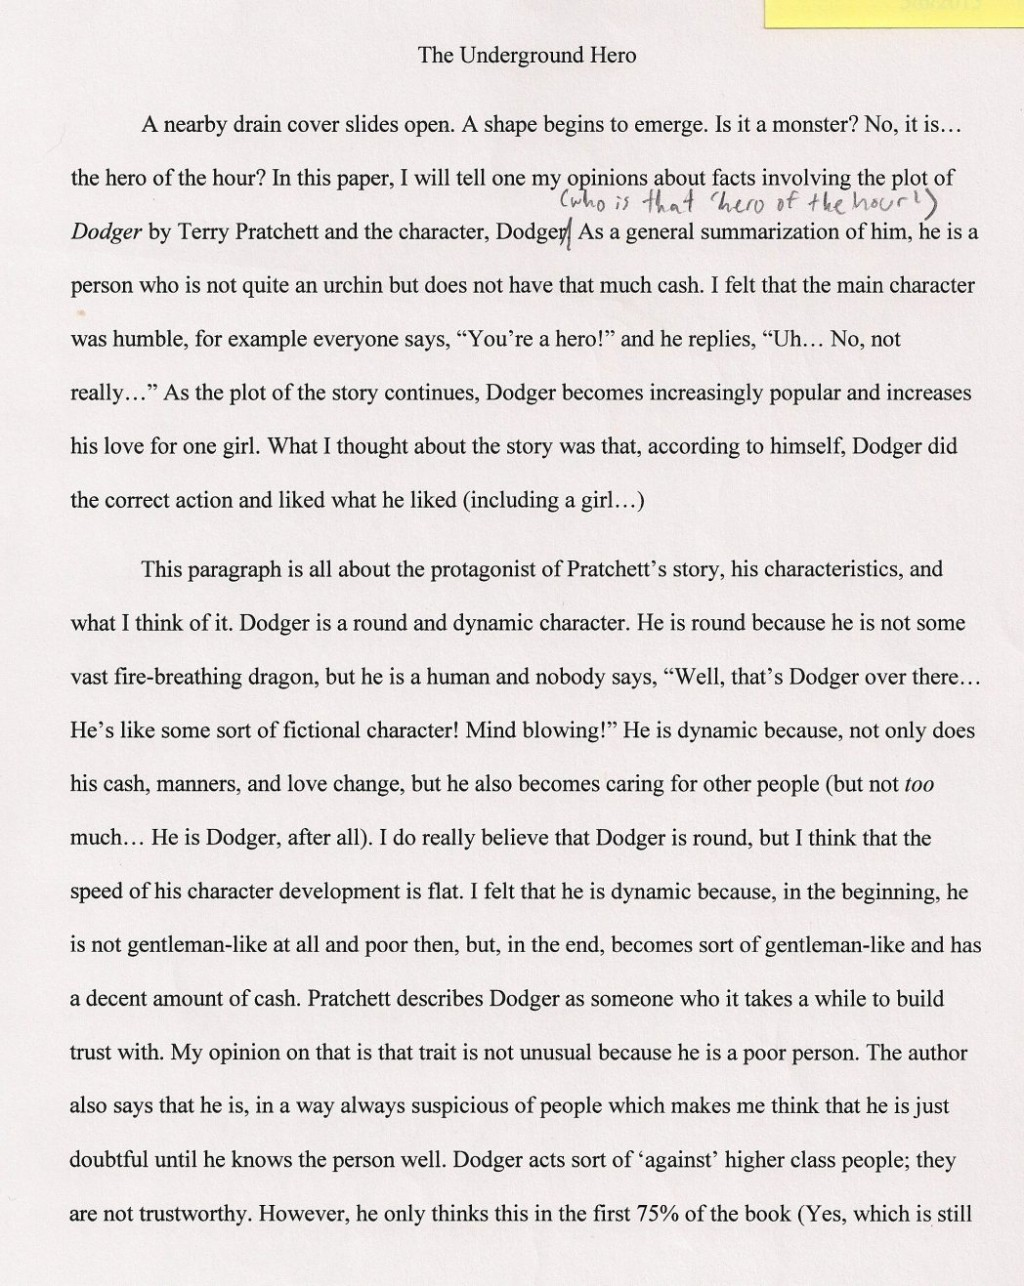 027 Essay On My Favorite Teacher For Kids College The Underground H Favourite Essays 1048x1317 Marvelous Teachers Importance Class In Urdu Write An Large